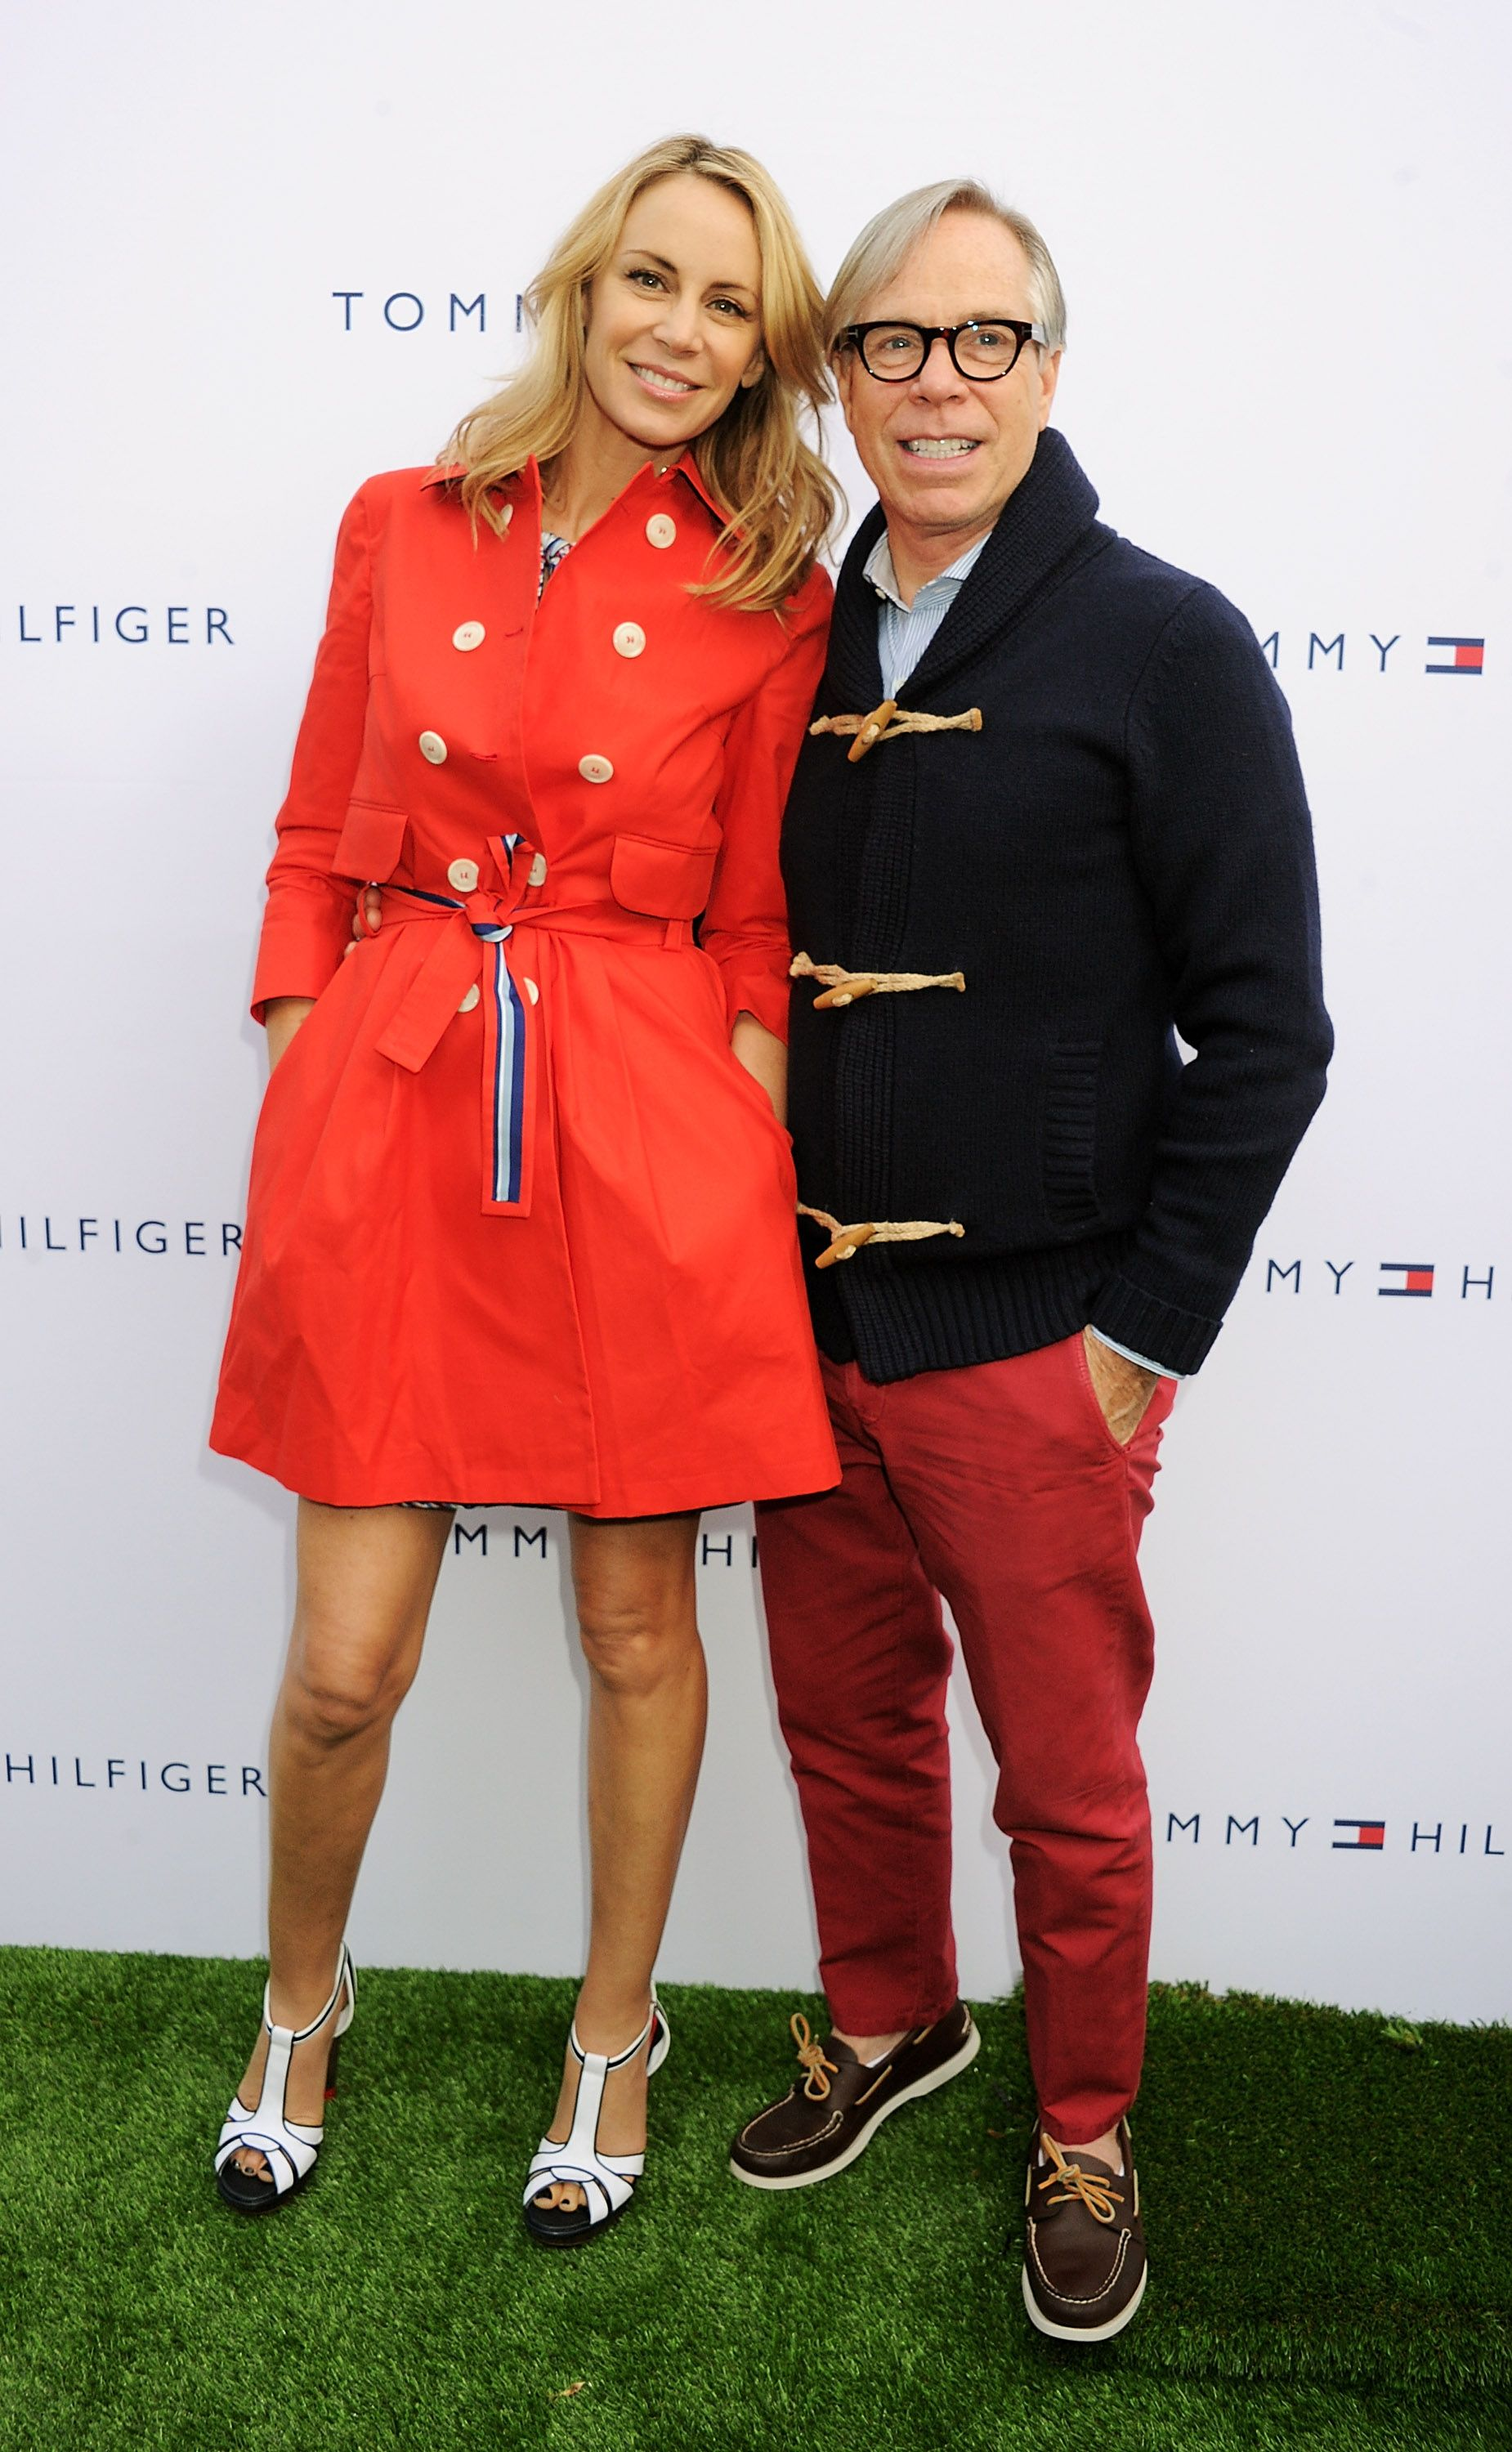 You Can Now Buy Furniture from Tommy Hilfiger and Dee Ocleppo's Greenwich Estate